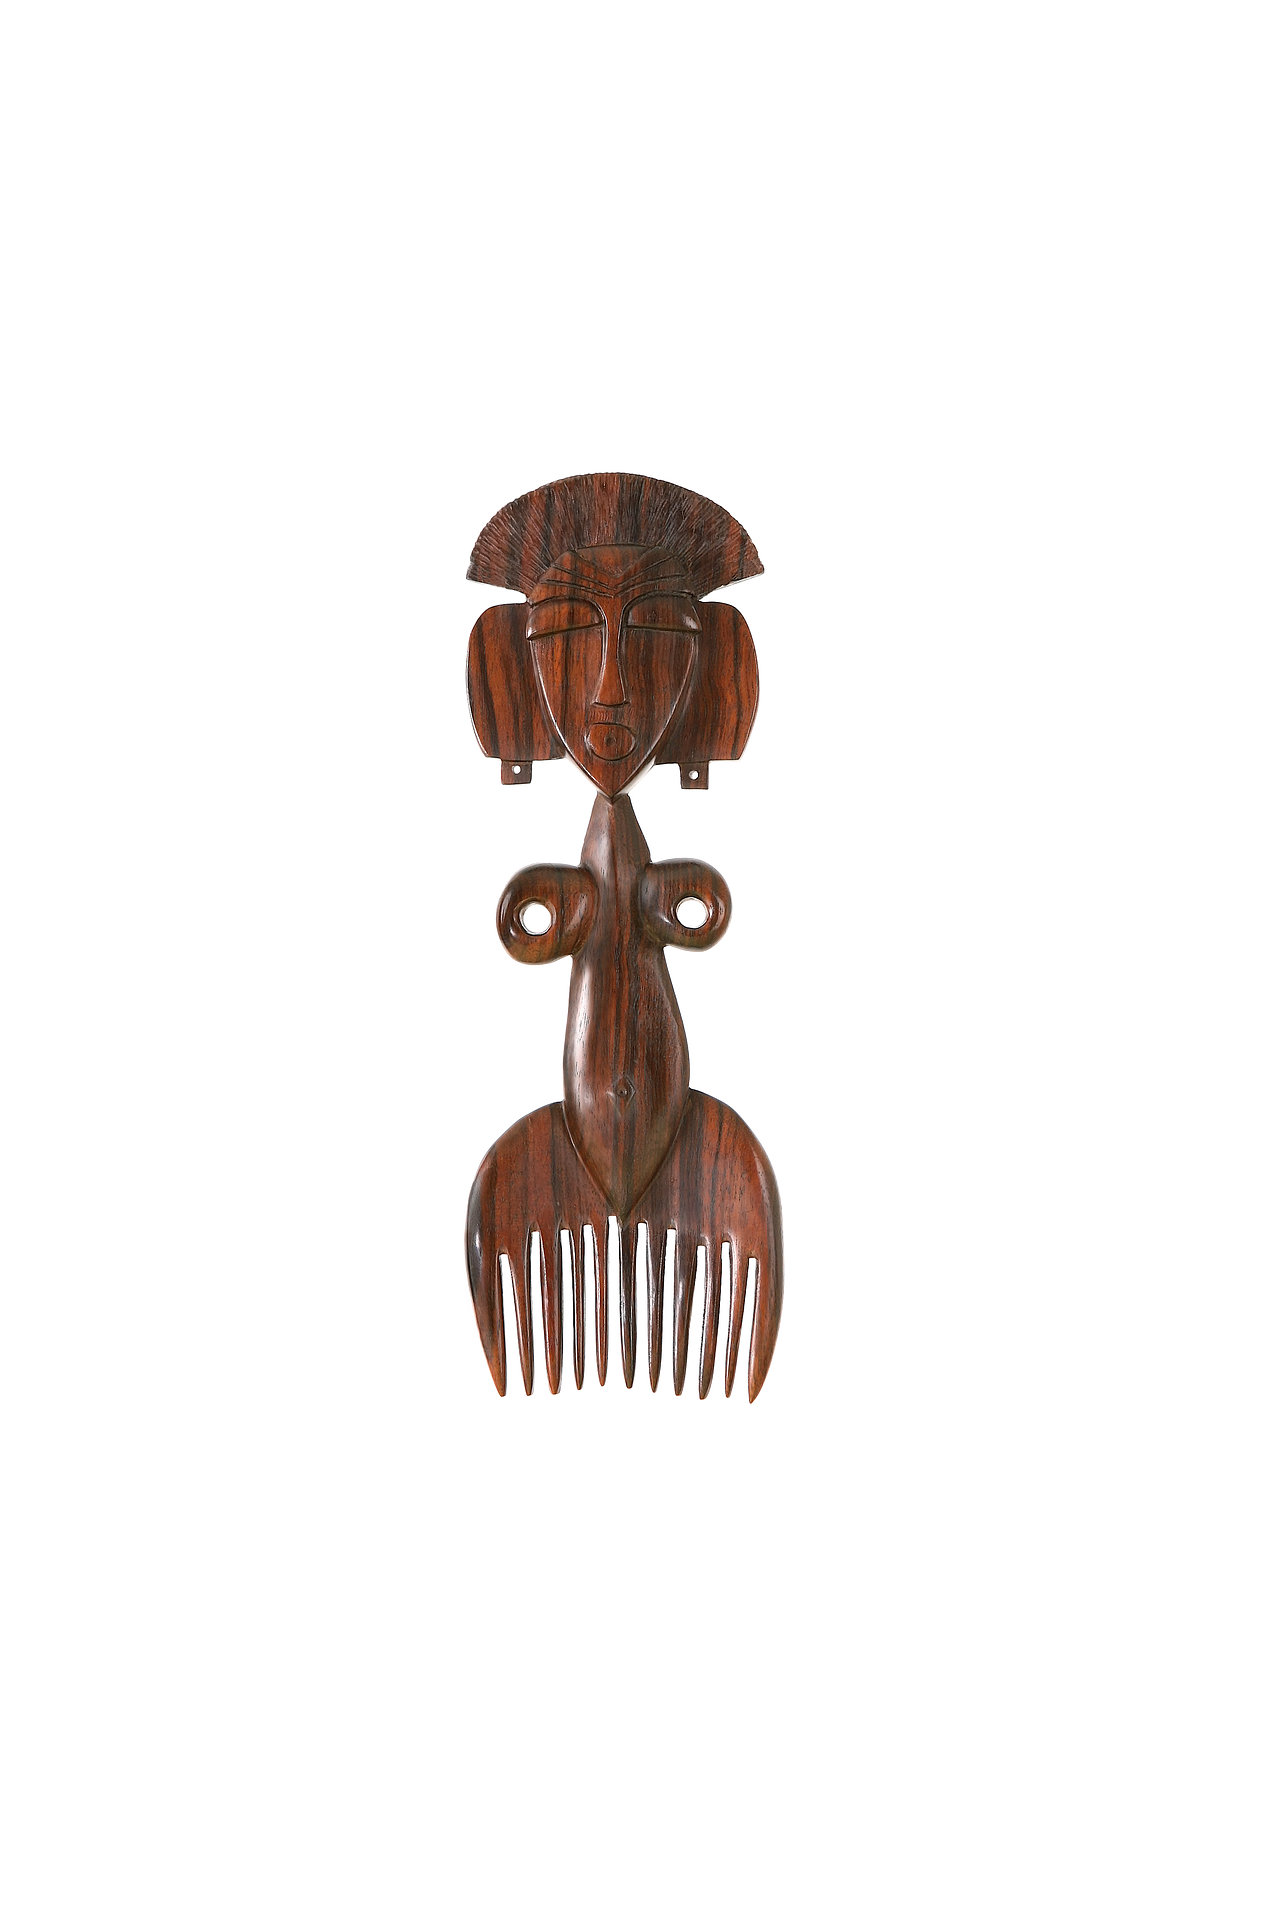 African wood comb